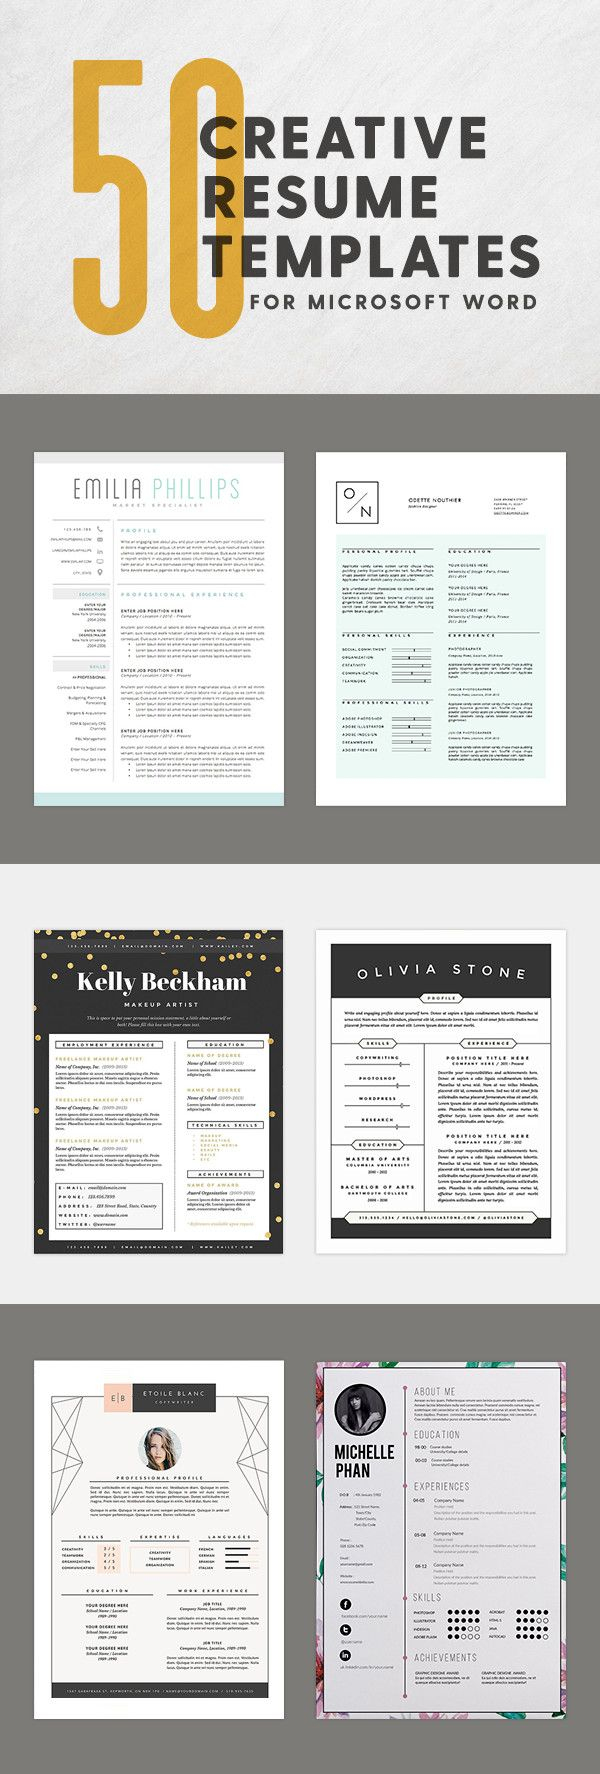 62 best ✏ Professional Resume Templates images on Pinterest ...